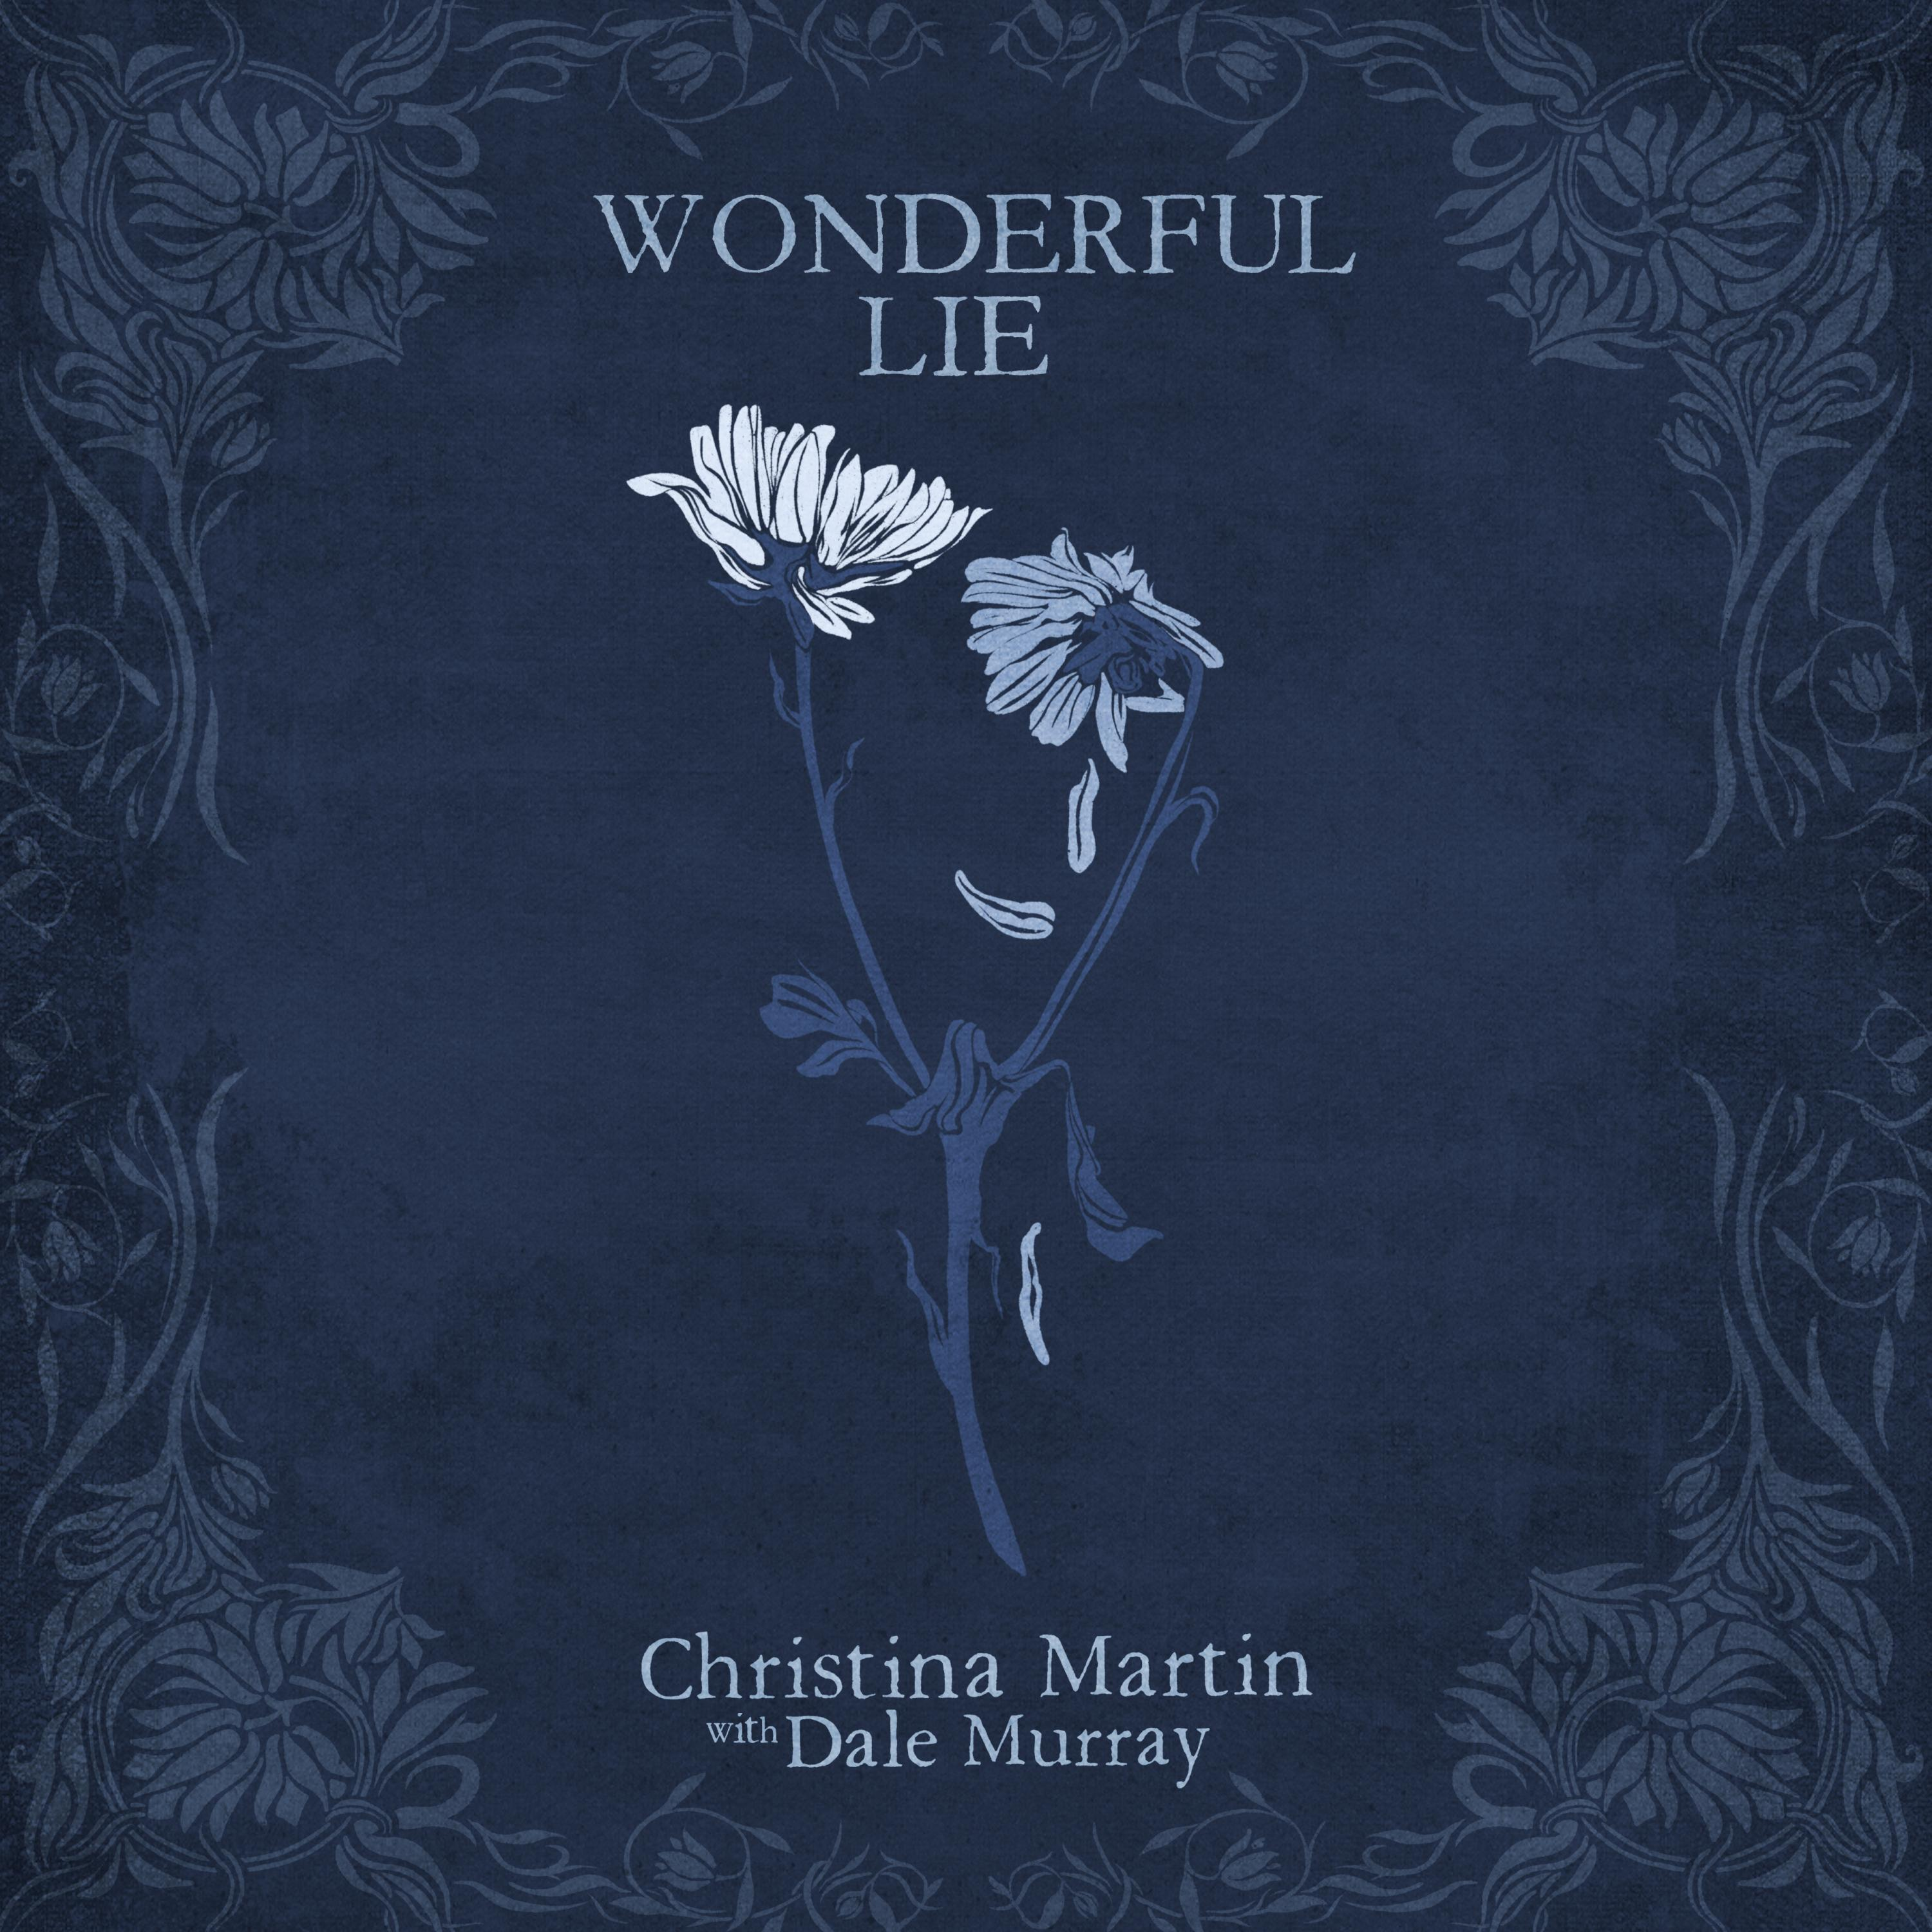 Wonderful Lie Christina Martin with Dale Murray